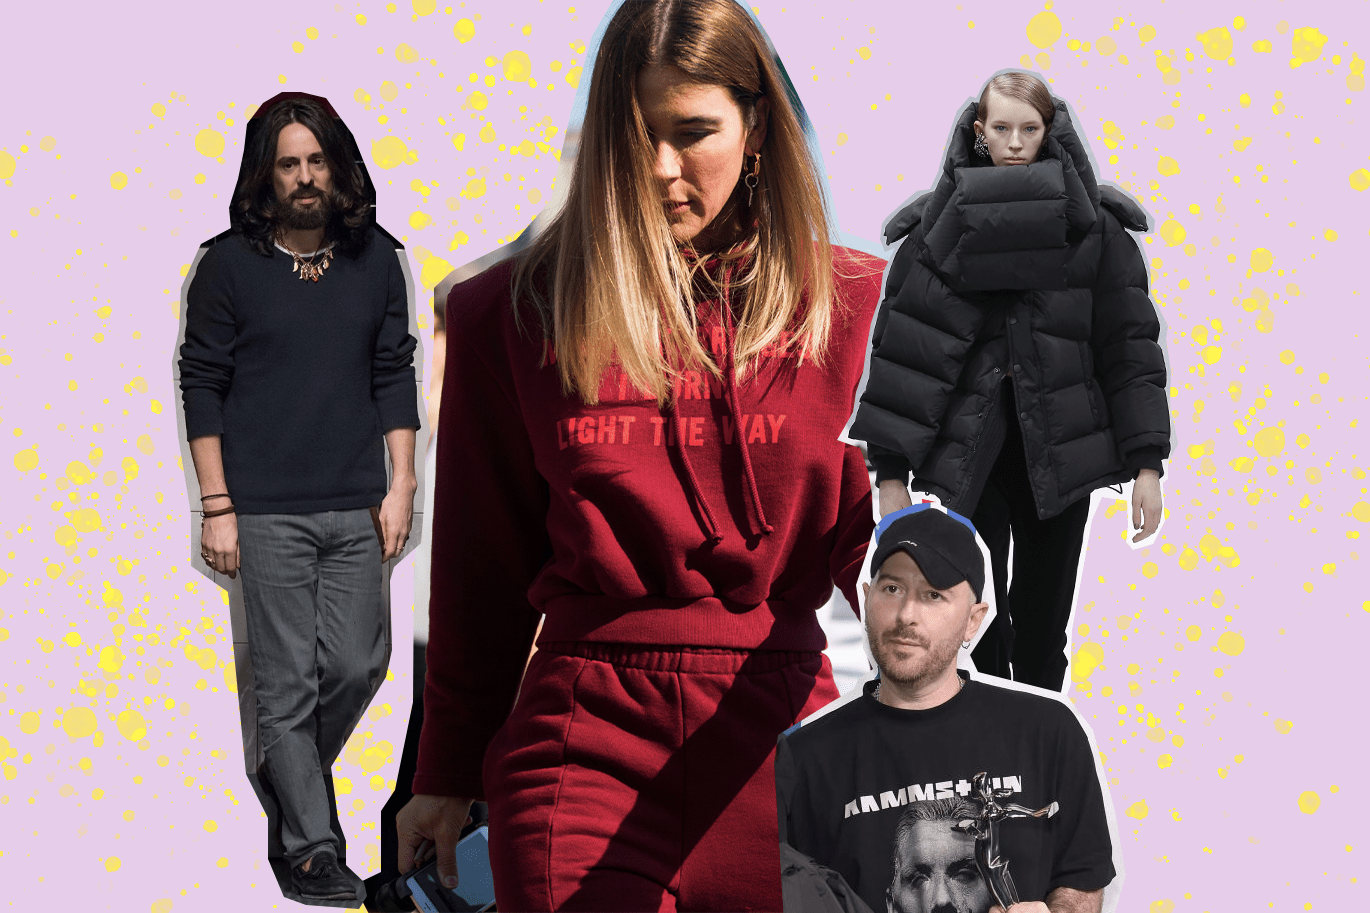 Here Are All The Biggest Trends of the 2010s Fashion Brands Celebrity Style Icons Kanye WEst Virgil Abloh Streetwear Luxury Fashion industry